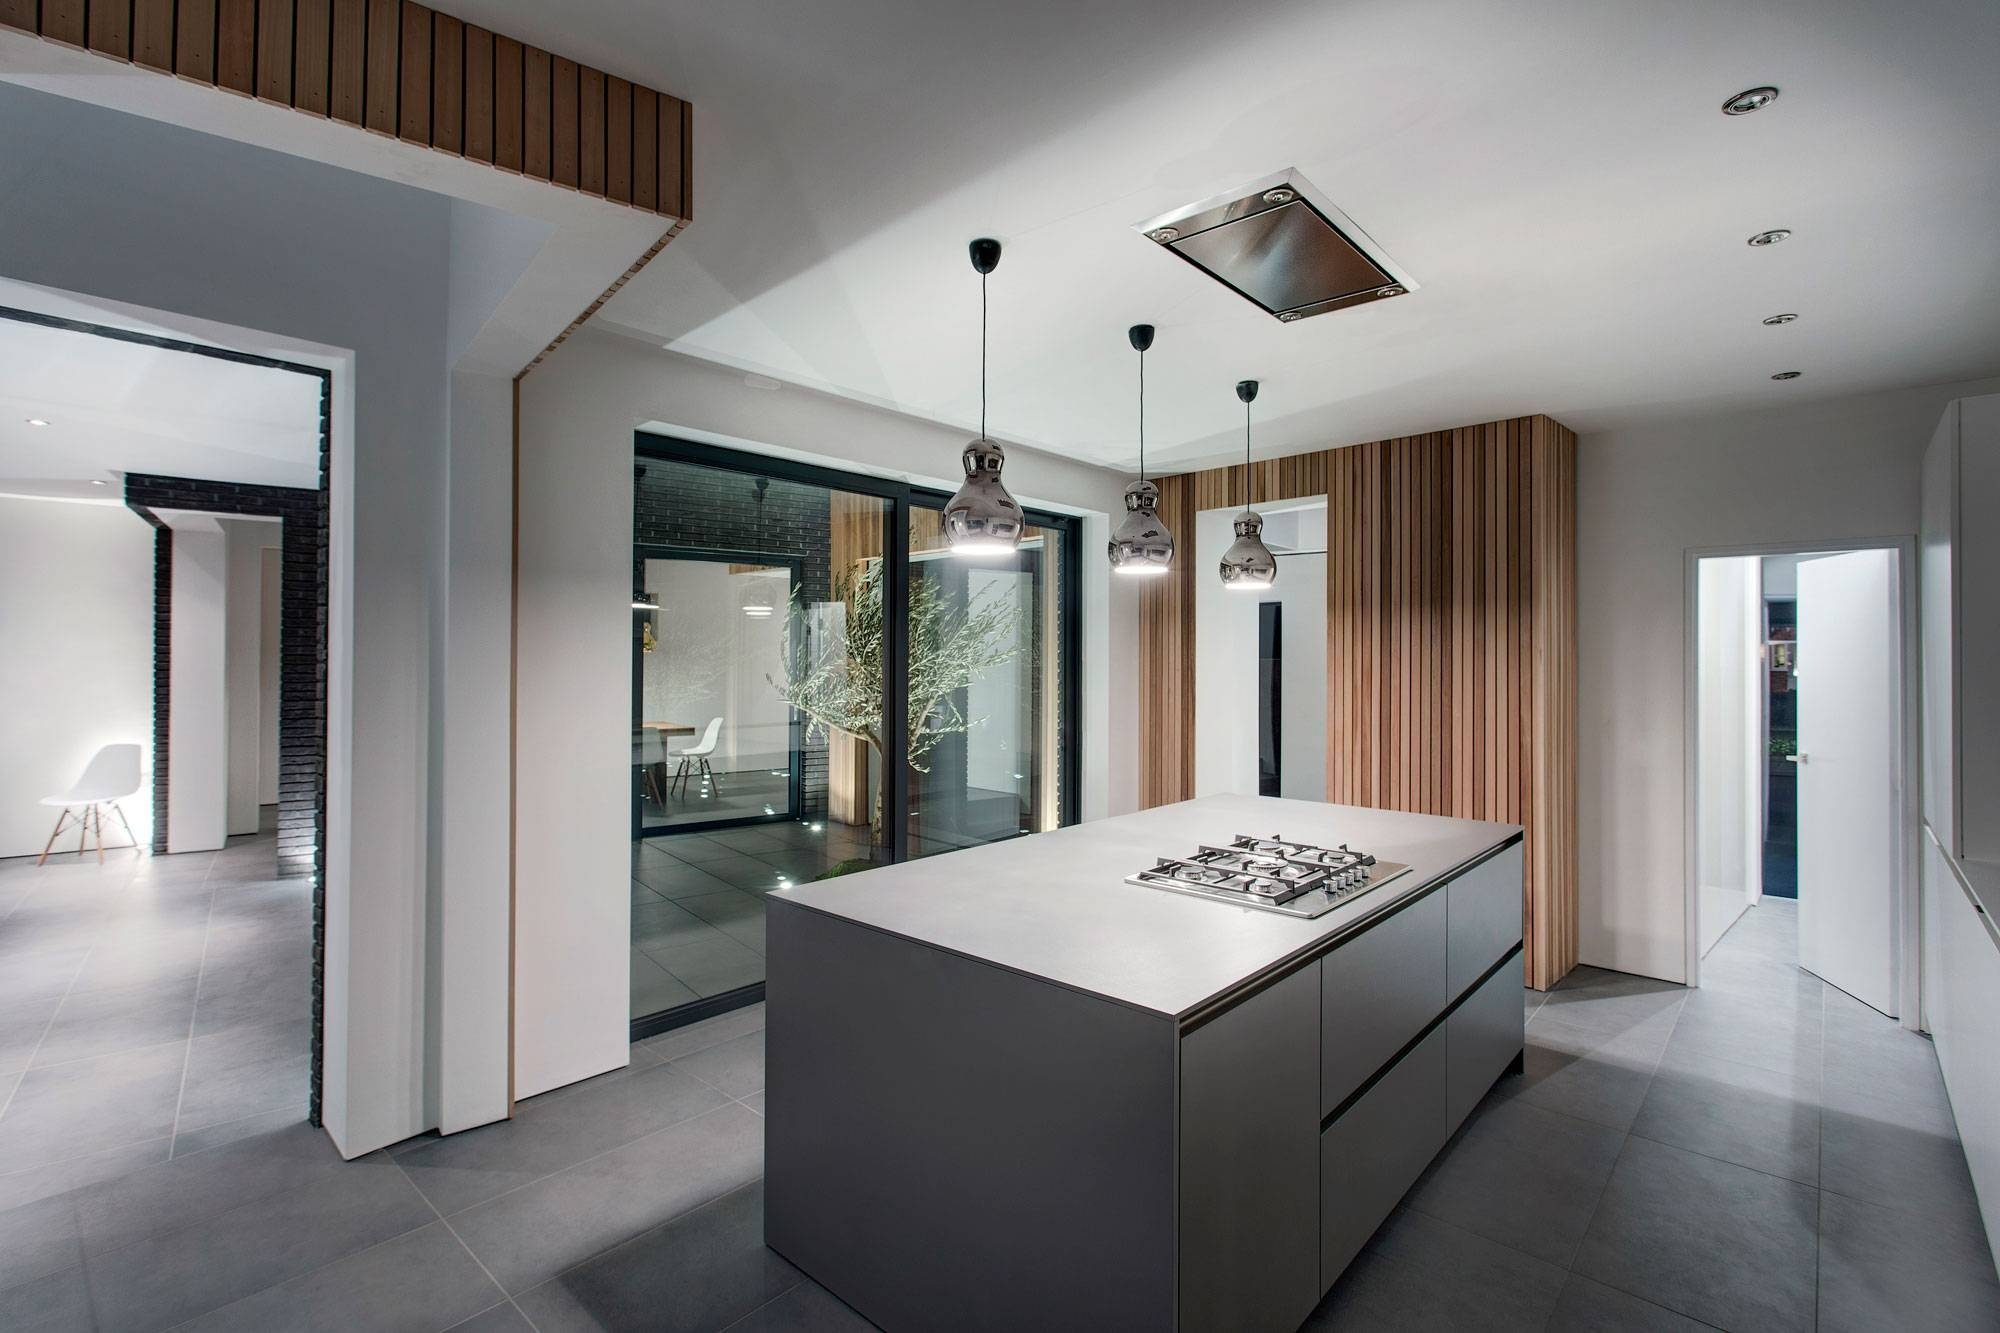 Brilliant Modern Kitchen Pendant Lighting In House Design Ideas with regard to Modern Pendant Lights Sydney (Image 3 of 15)